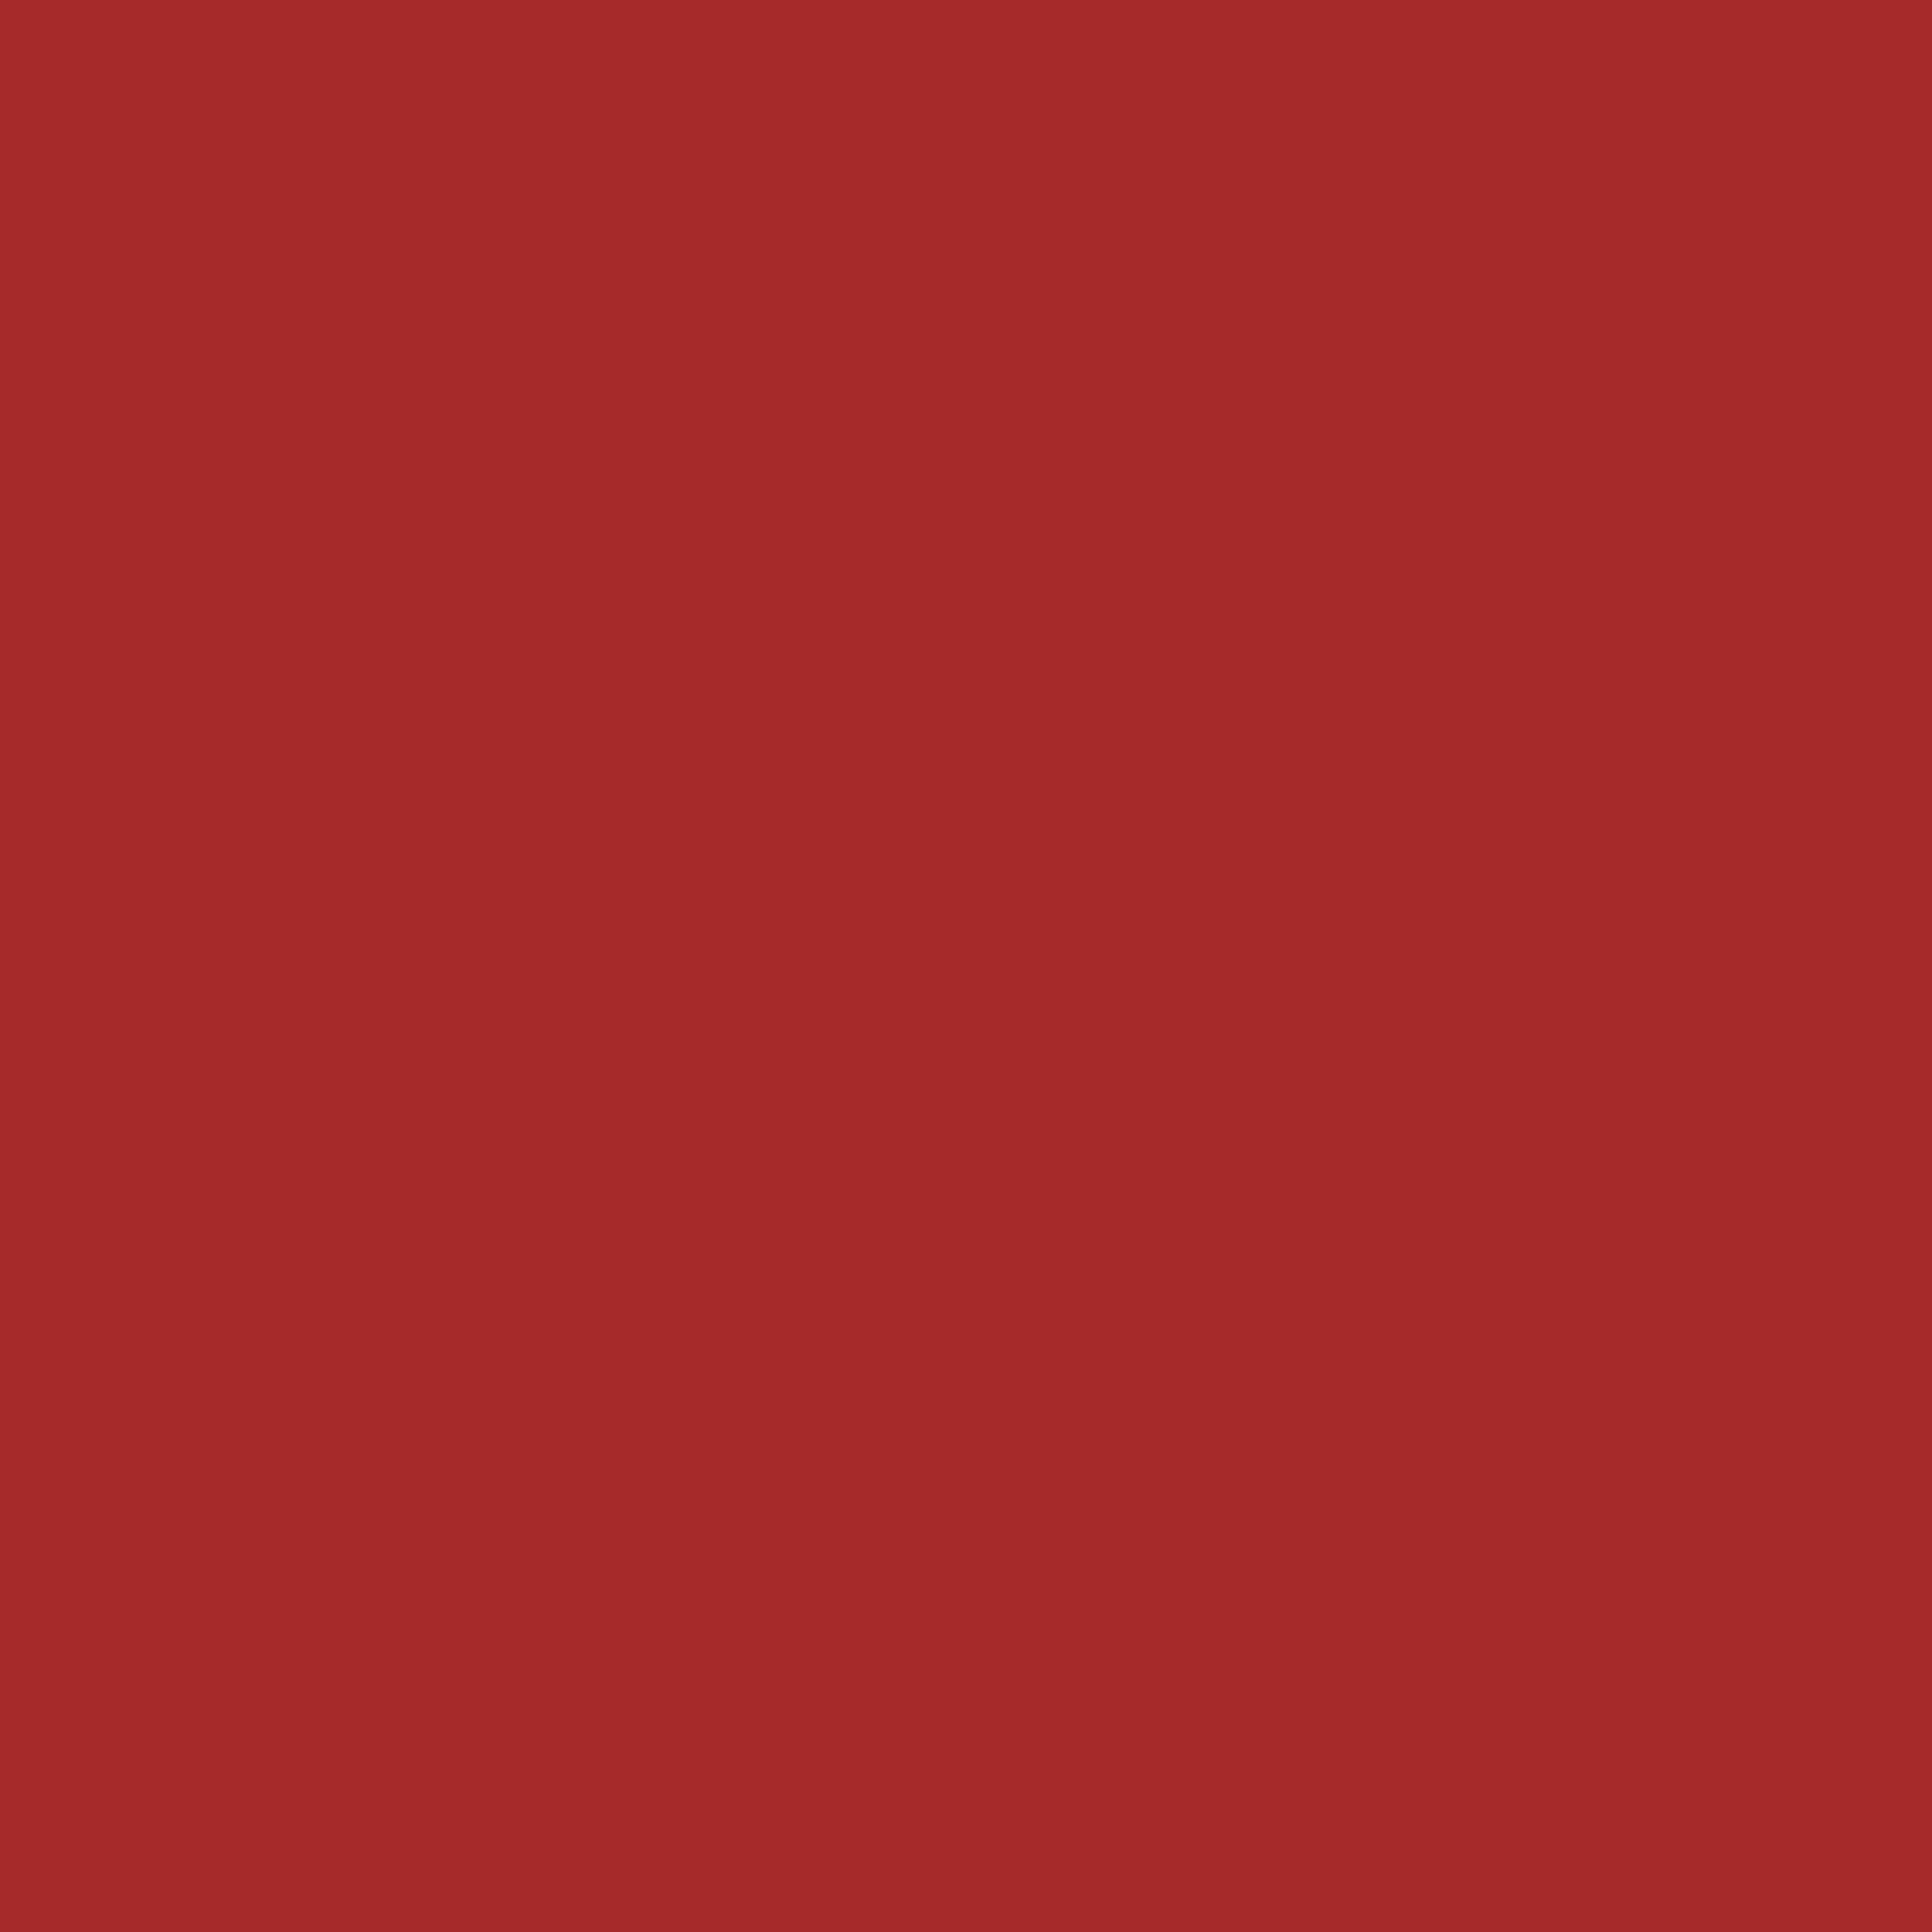 2732x2732 Red-brown Solid Color Background